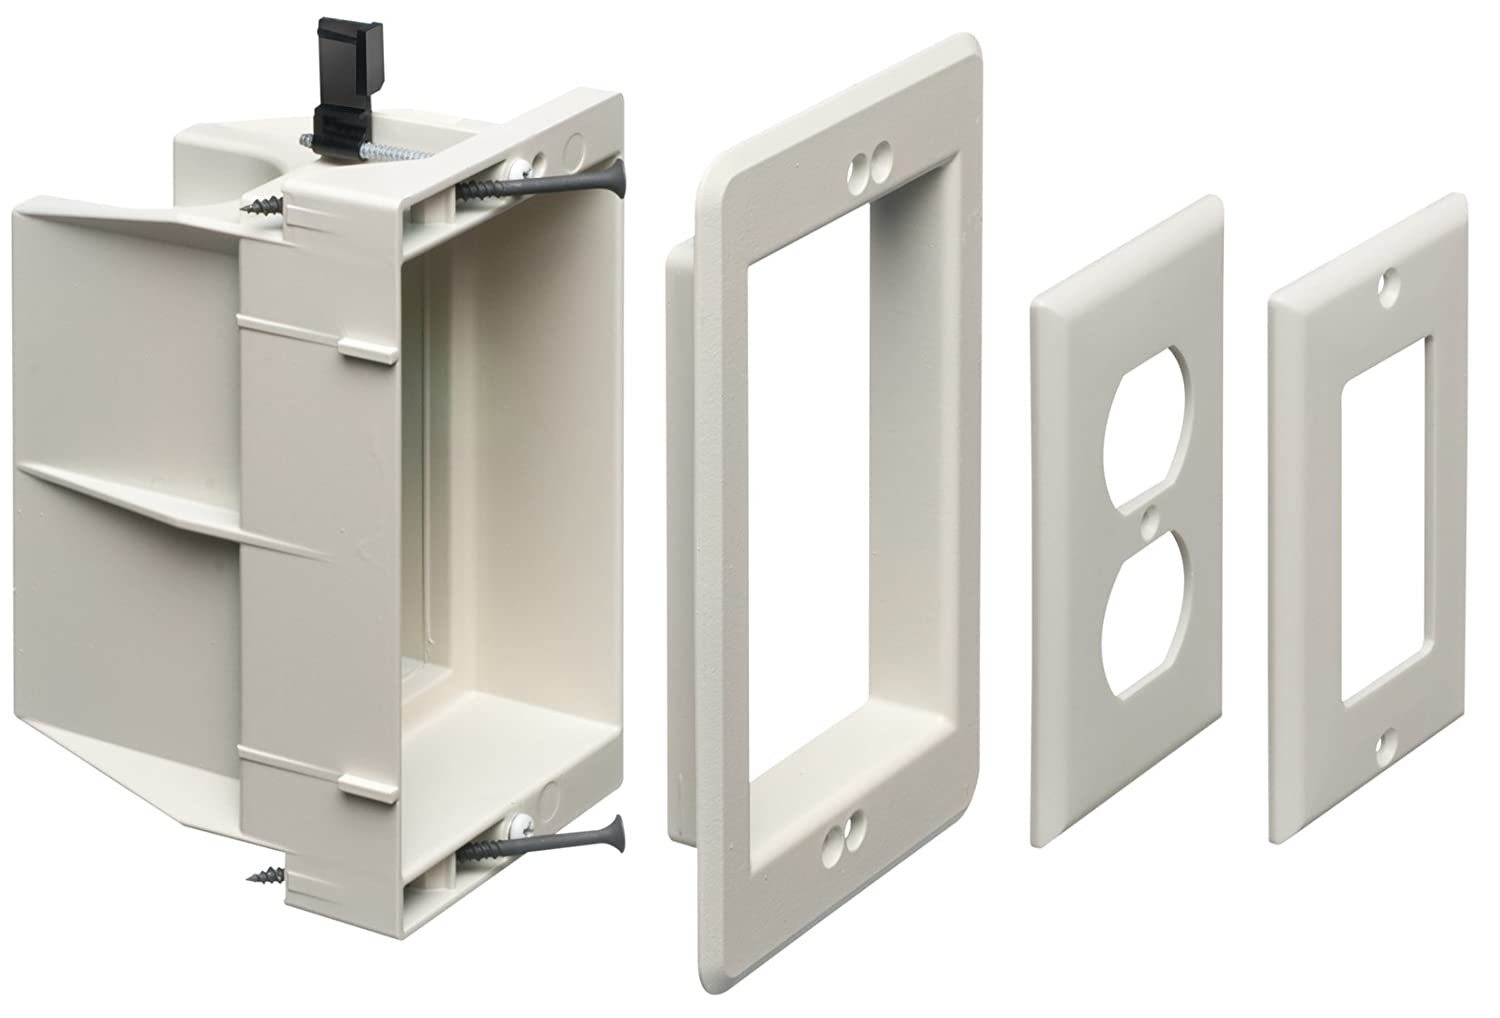 Electrical Wall Boxes : Arlington dvfr w recessed electrical outlet mounting box